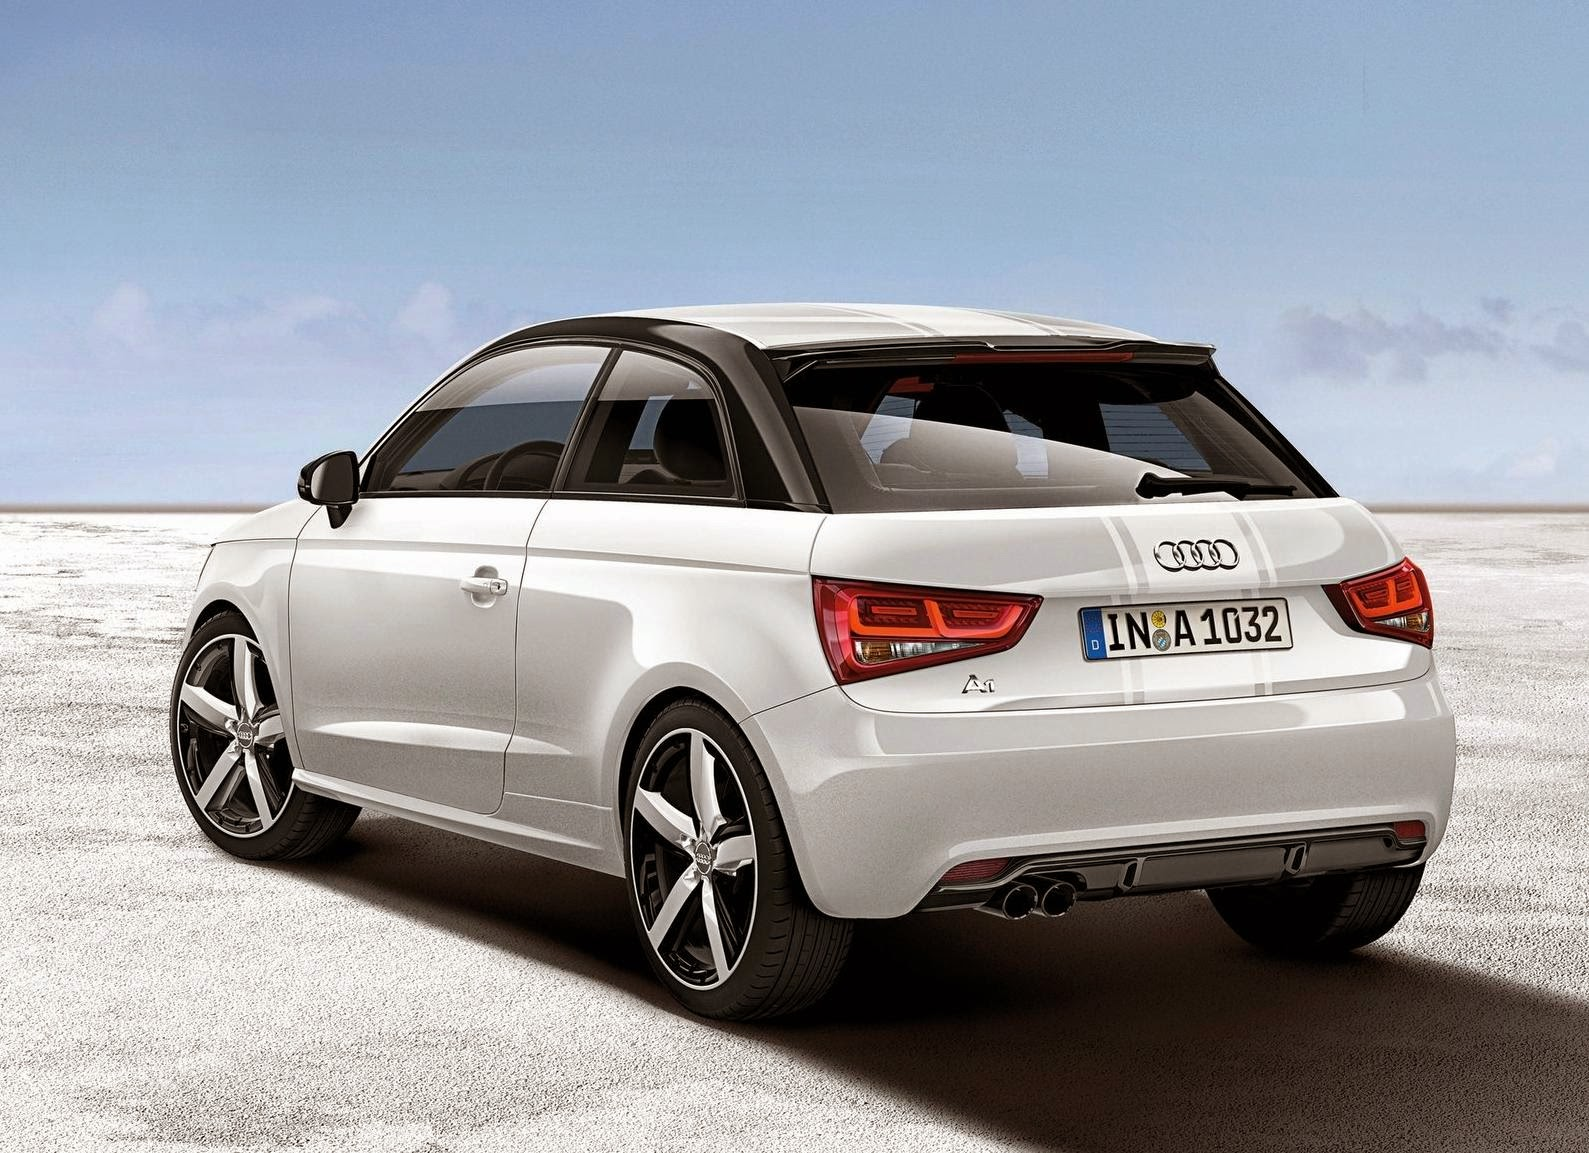 Audi A1 Amplified 2012 Full-screen HD Wallpaper